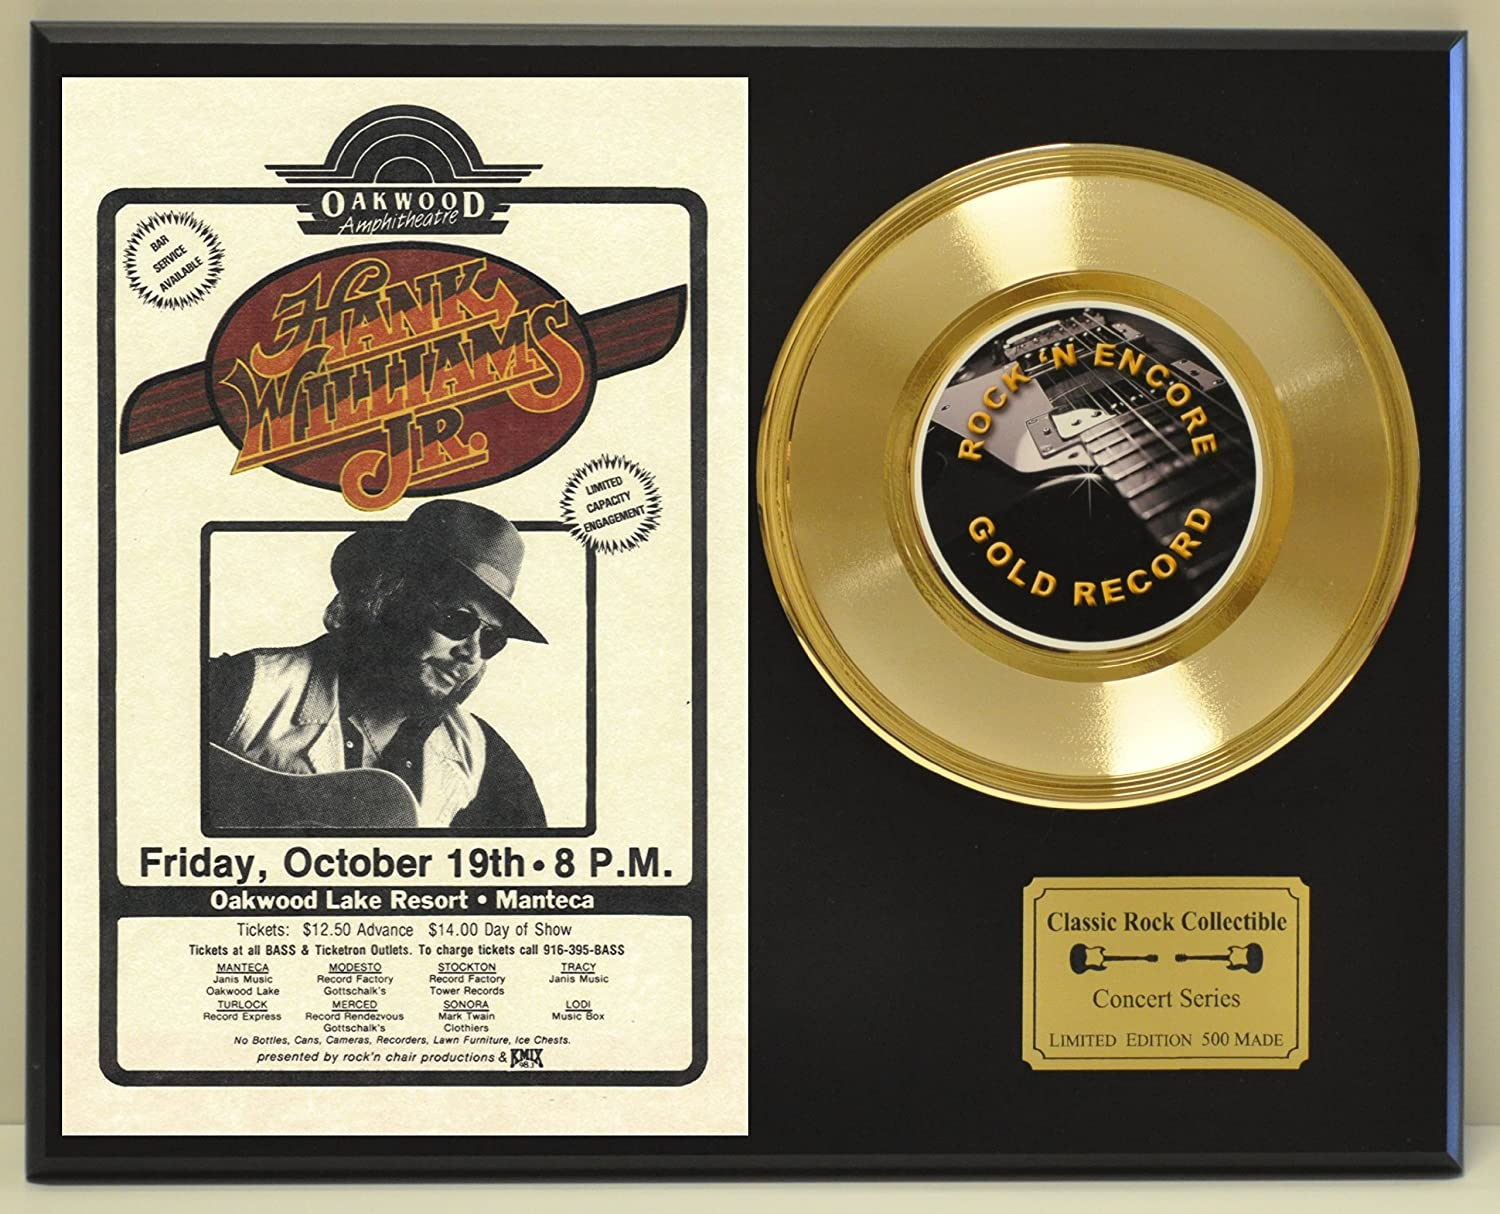 HANKS WILLIAMS JR Limited Edition Gold 45 Record Display. Only 500 made. Limited quanities. FREE US SHIPPING by  Classic Rock Collectibles